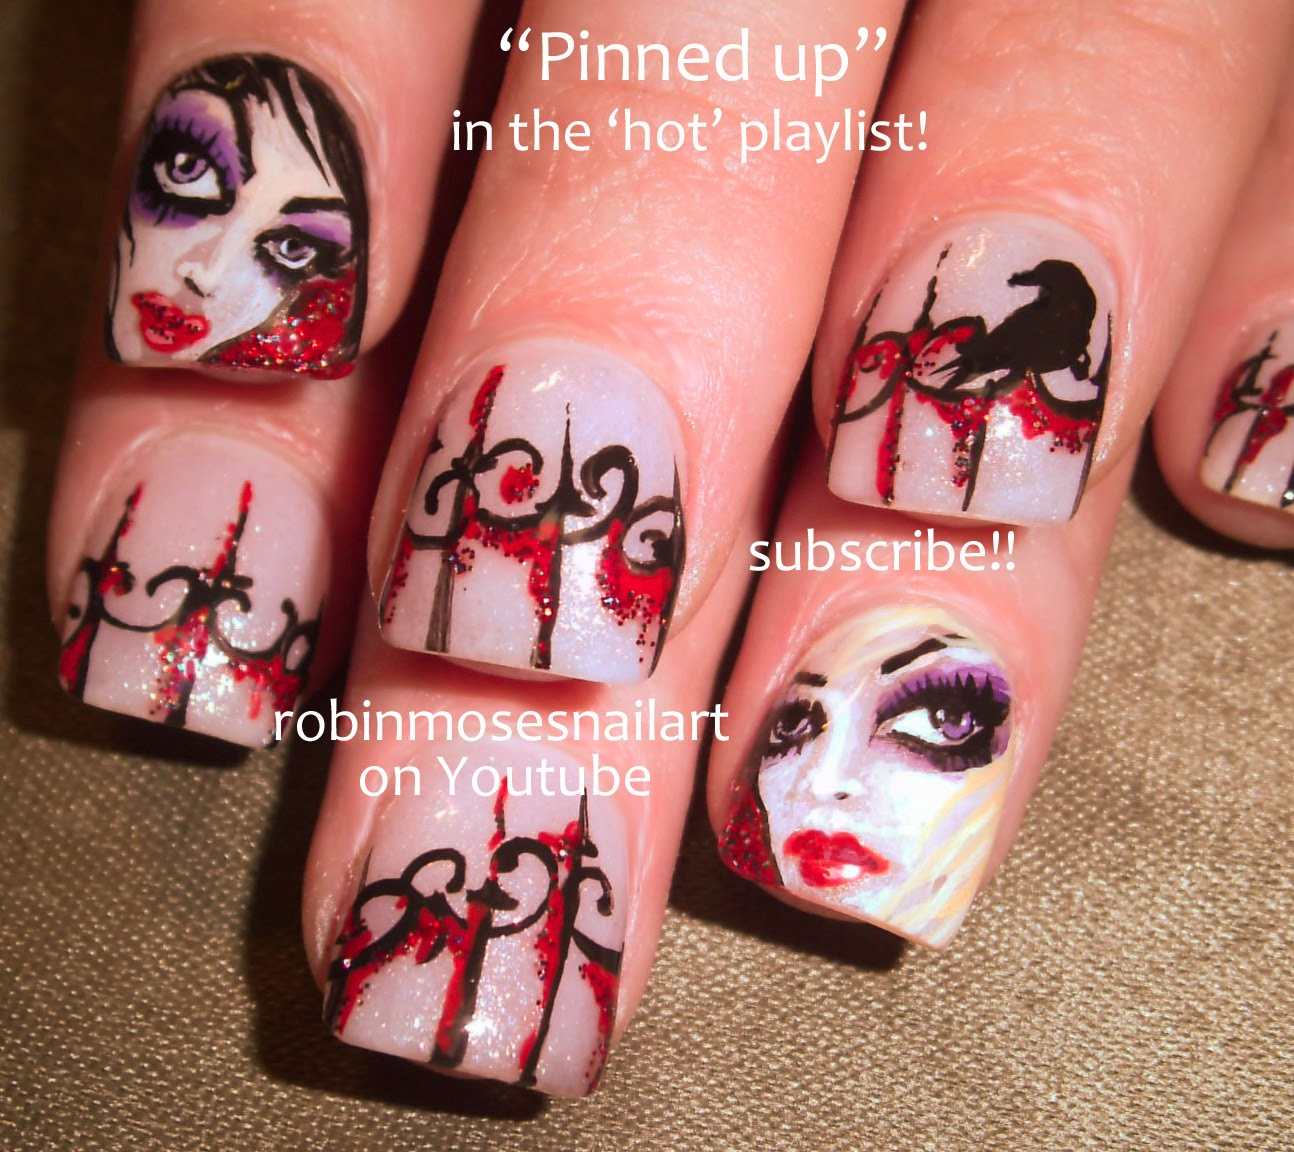 Robin moses nail art halloween nails halloween nail art nail art tutorials diy flower nail art tutorial designs for beginners and up prinsesfo Choice Image